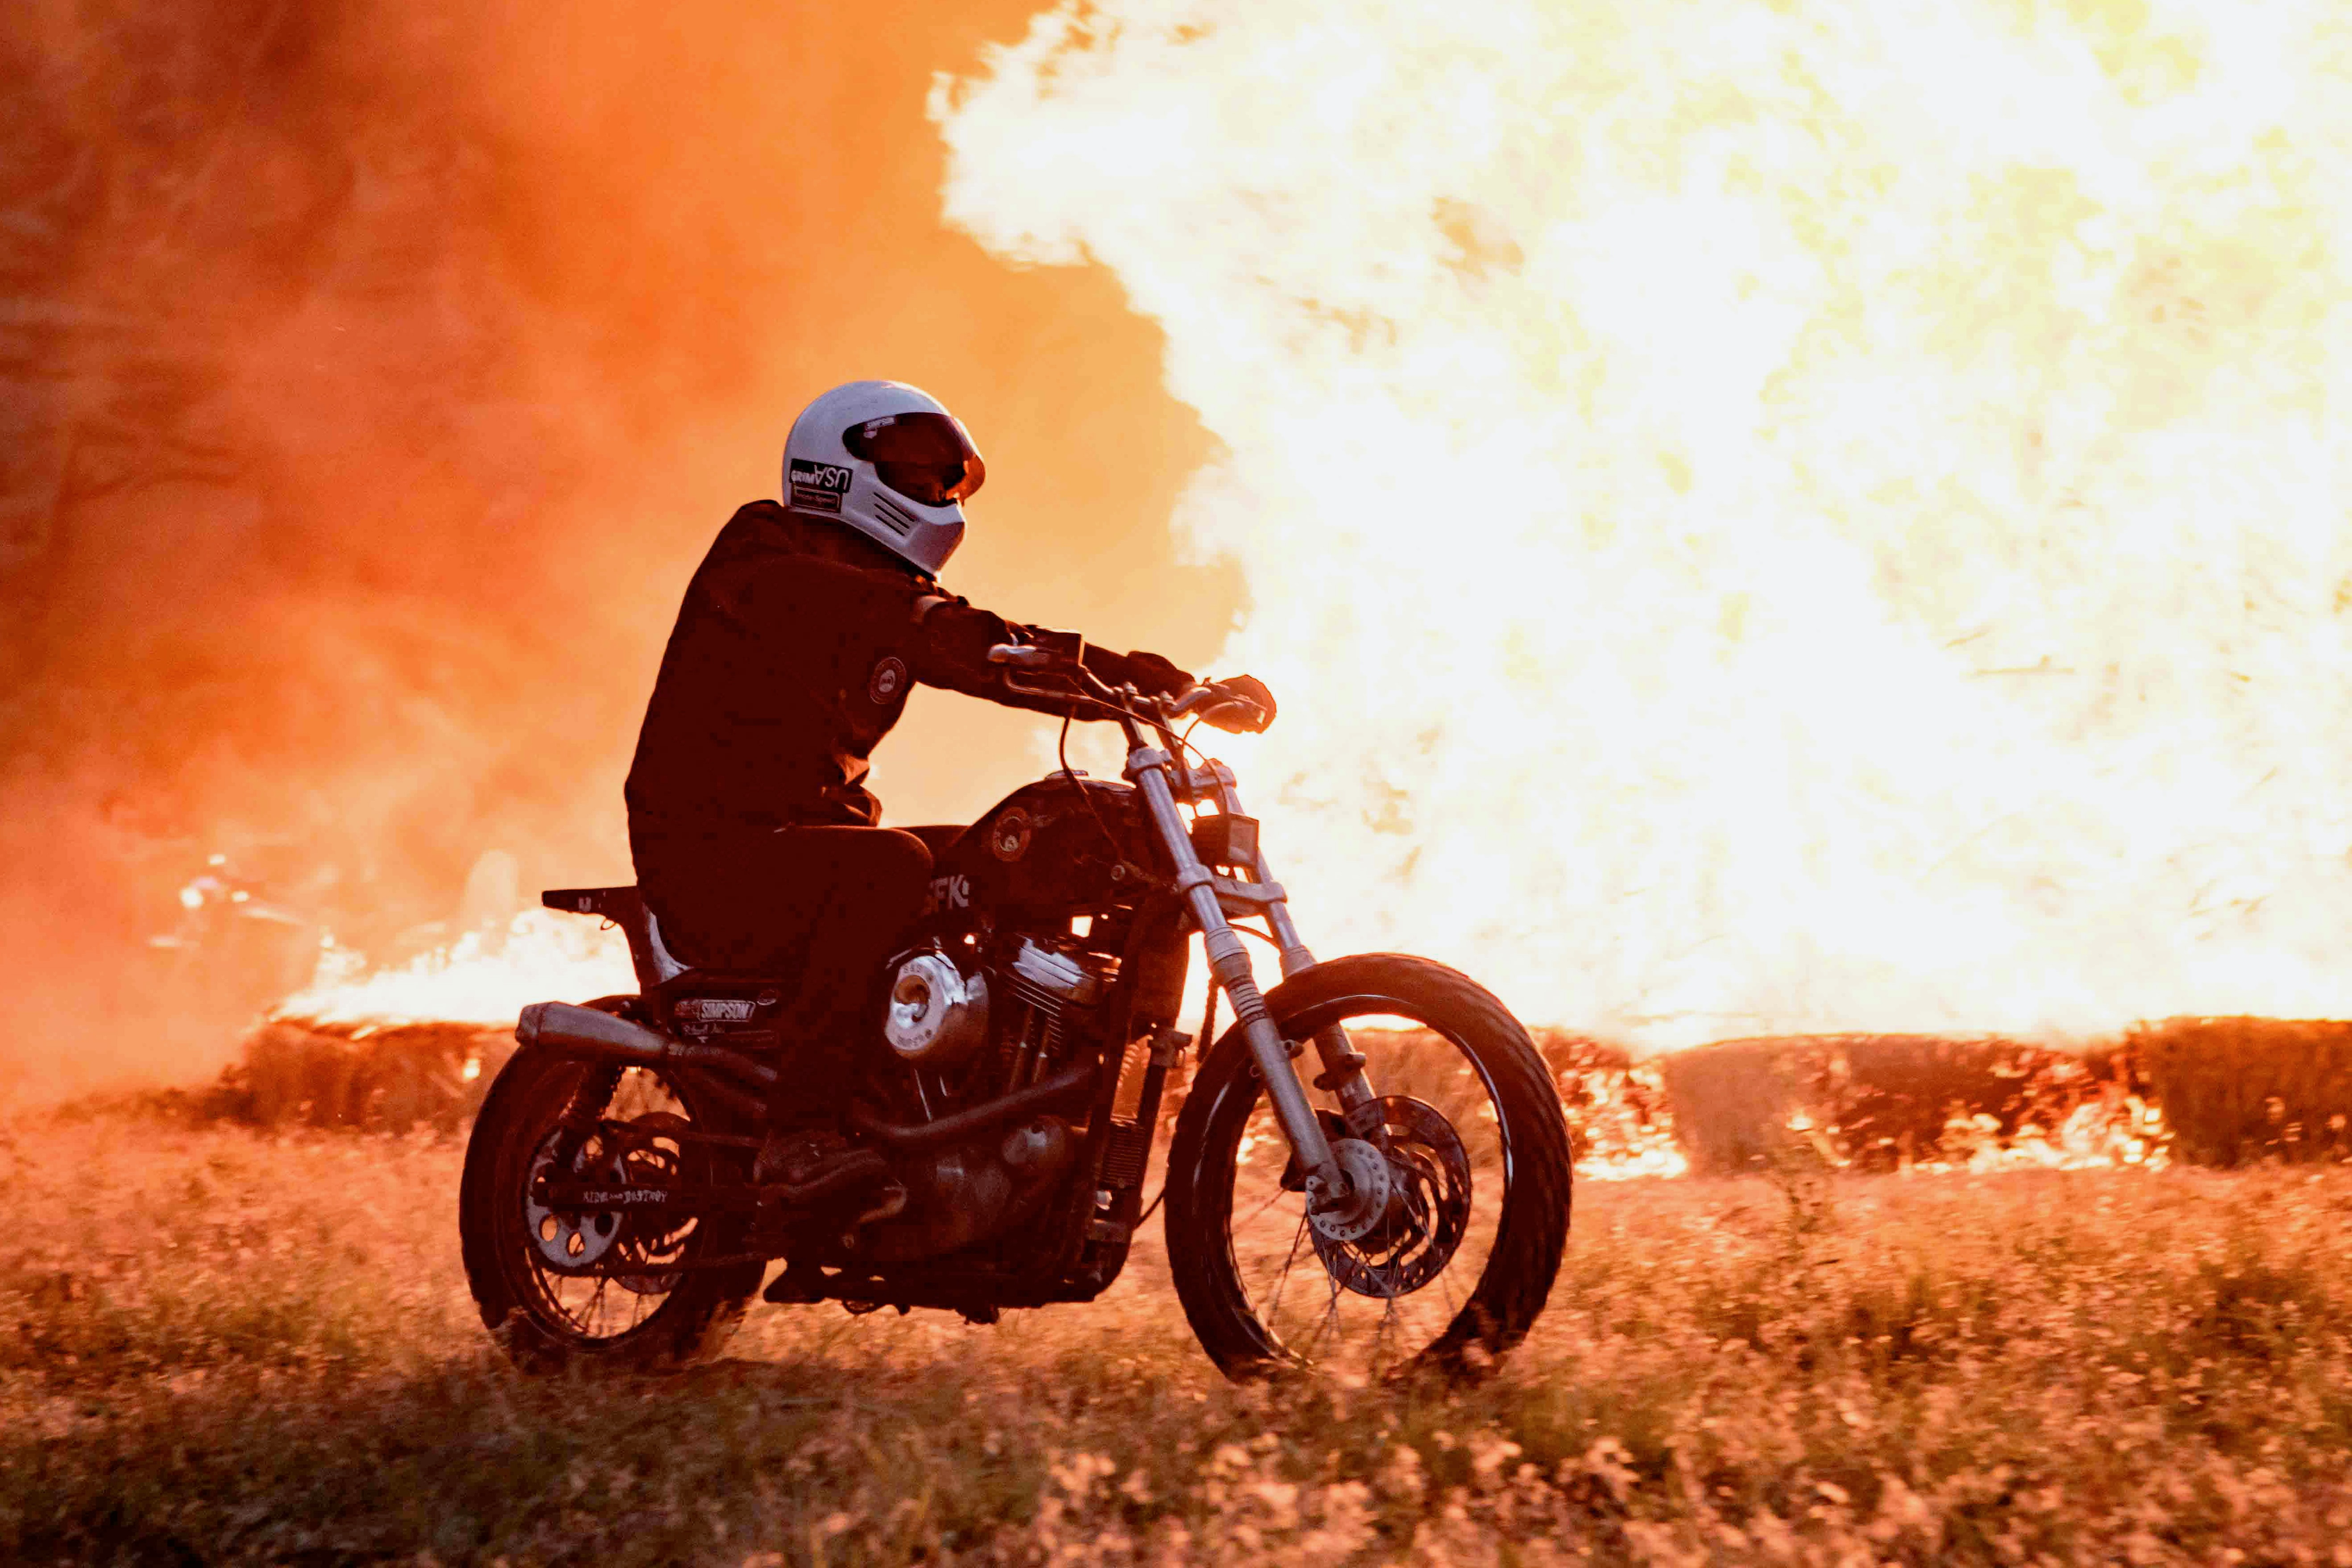 person riding motorcycle near burning structure